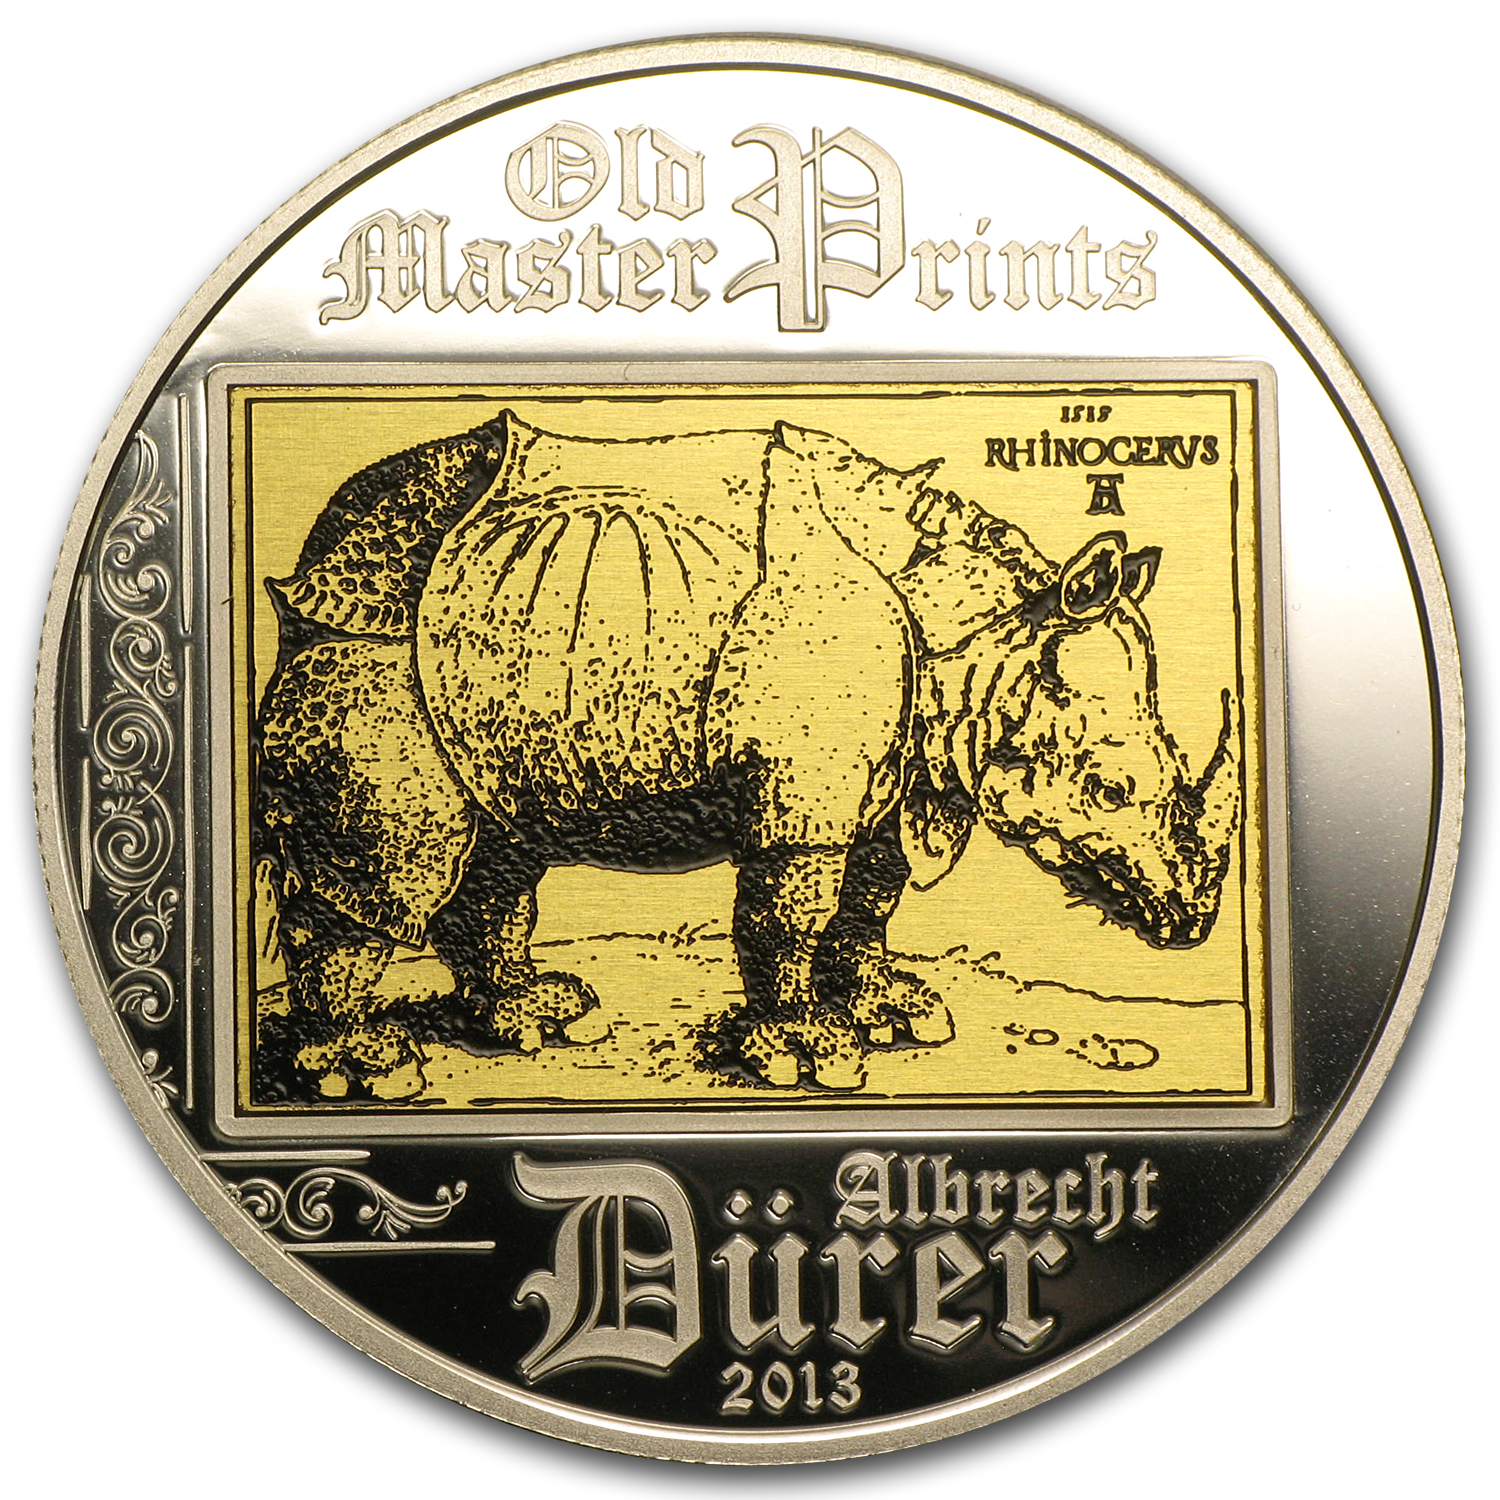 2013 Cook Islands Silver Proof $5 Albrecht Dürer Rhinoceros